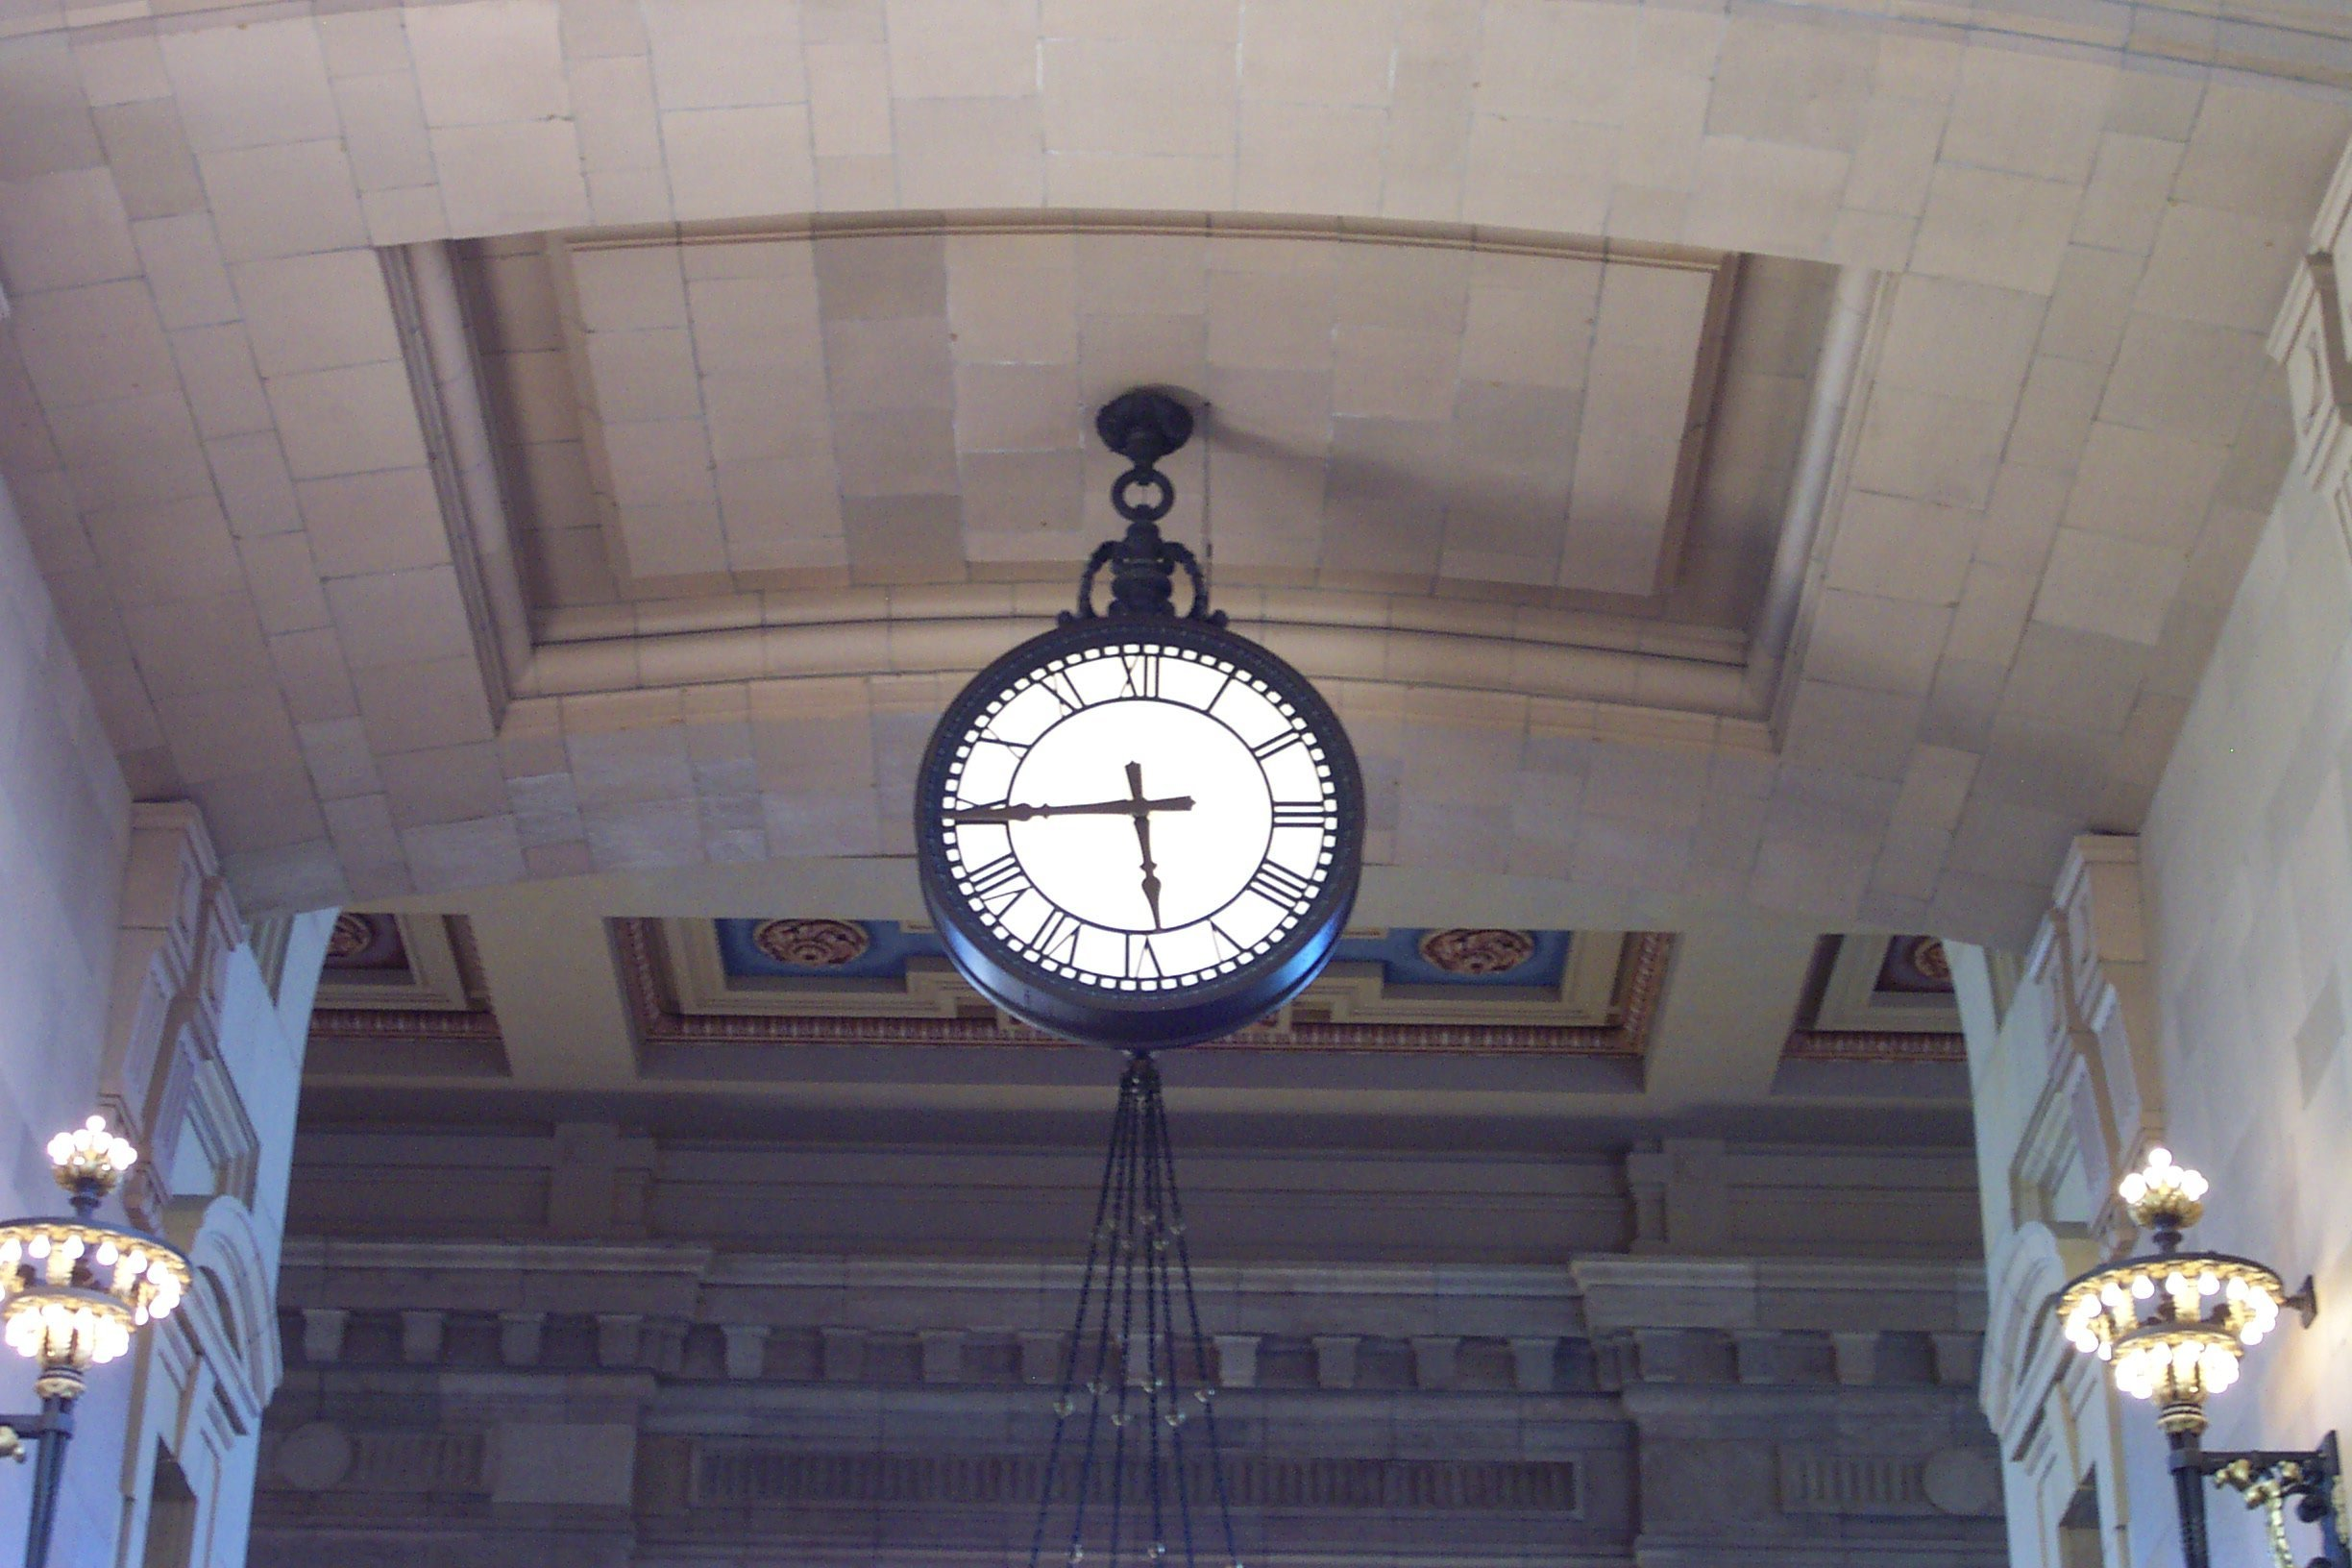 Re-installation of Double-sided Union Station Clock